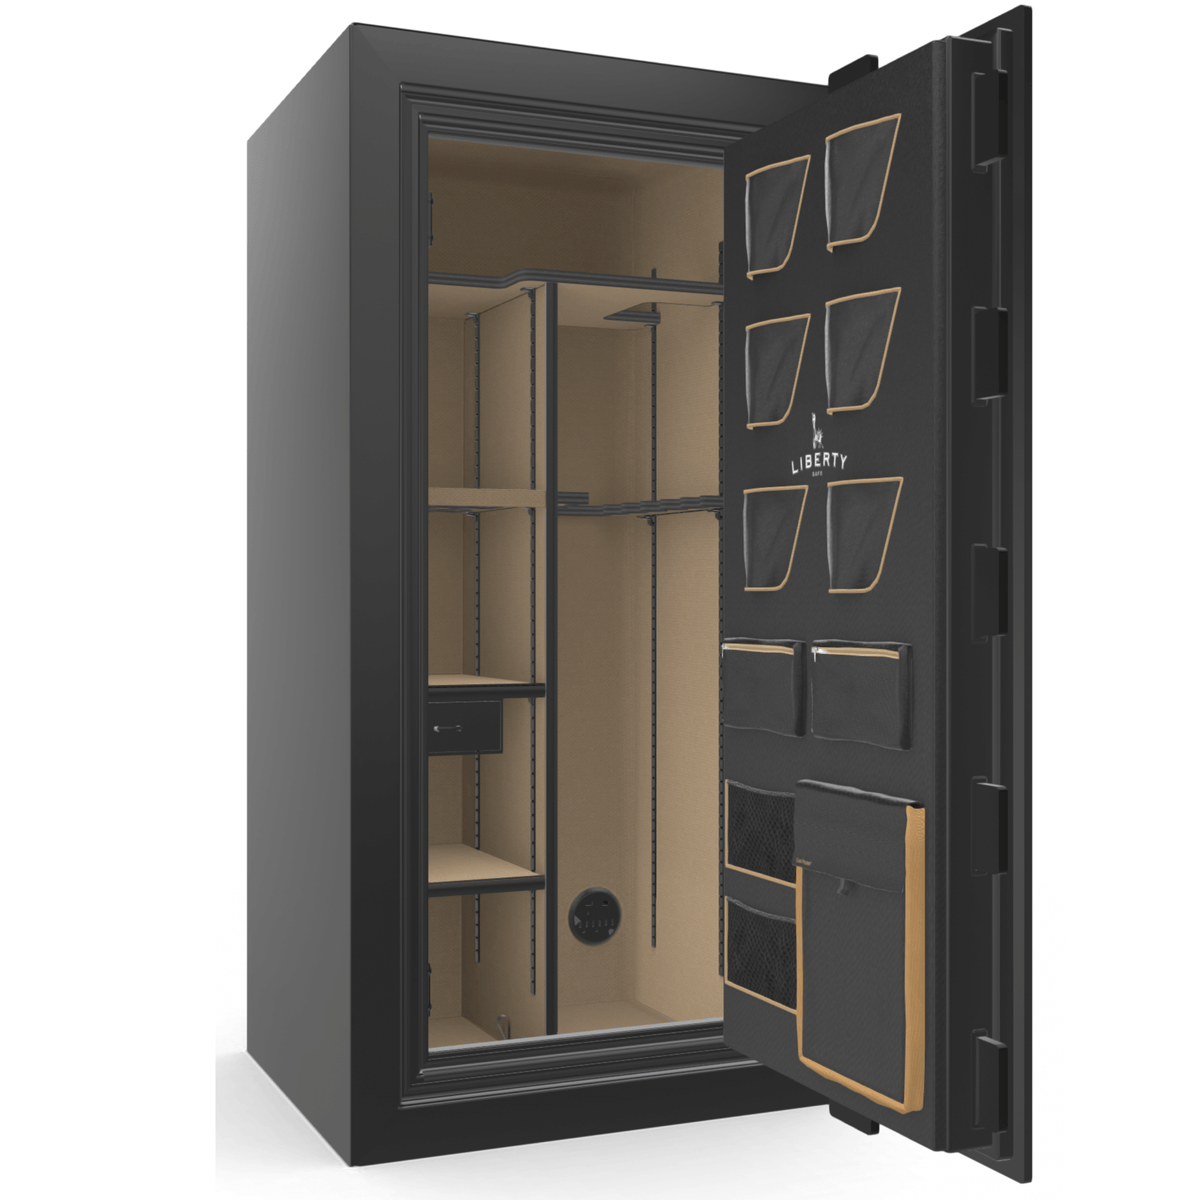 "Classic Plus | 25 | Level 7 Security | 110 Minute Fire Protection | Black Gloss | Brass Mechanical Lock | 60.5""(H) x 30""(W) x 29""(D)"